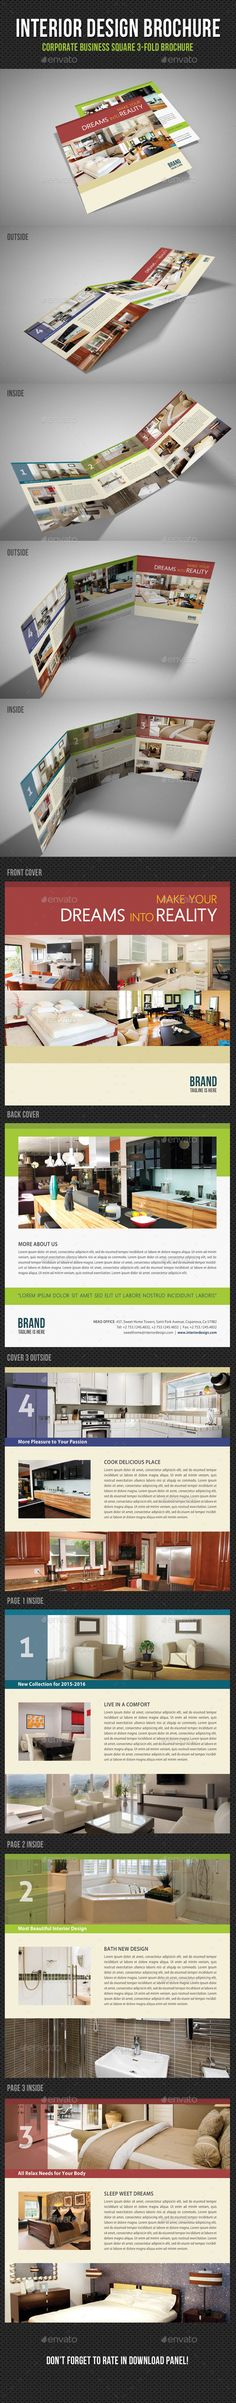 Interior Design Square 3-Fold Brochure V05 Brochures, Brochure - interior design brochure template